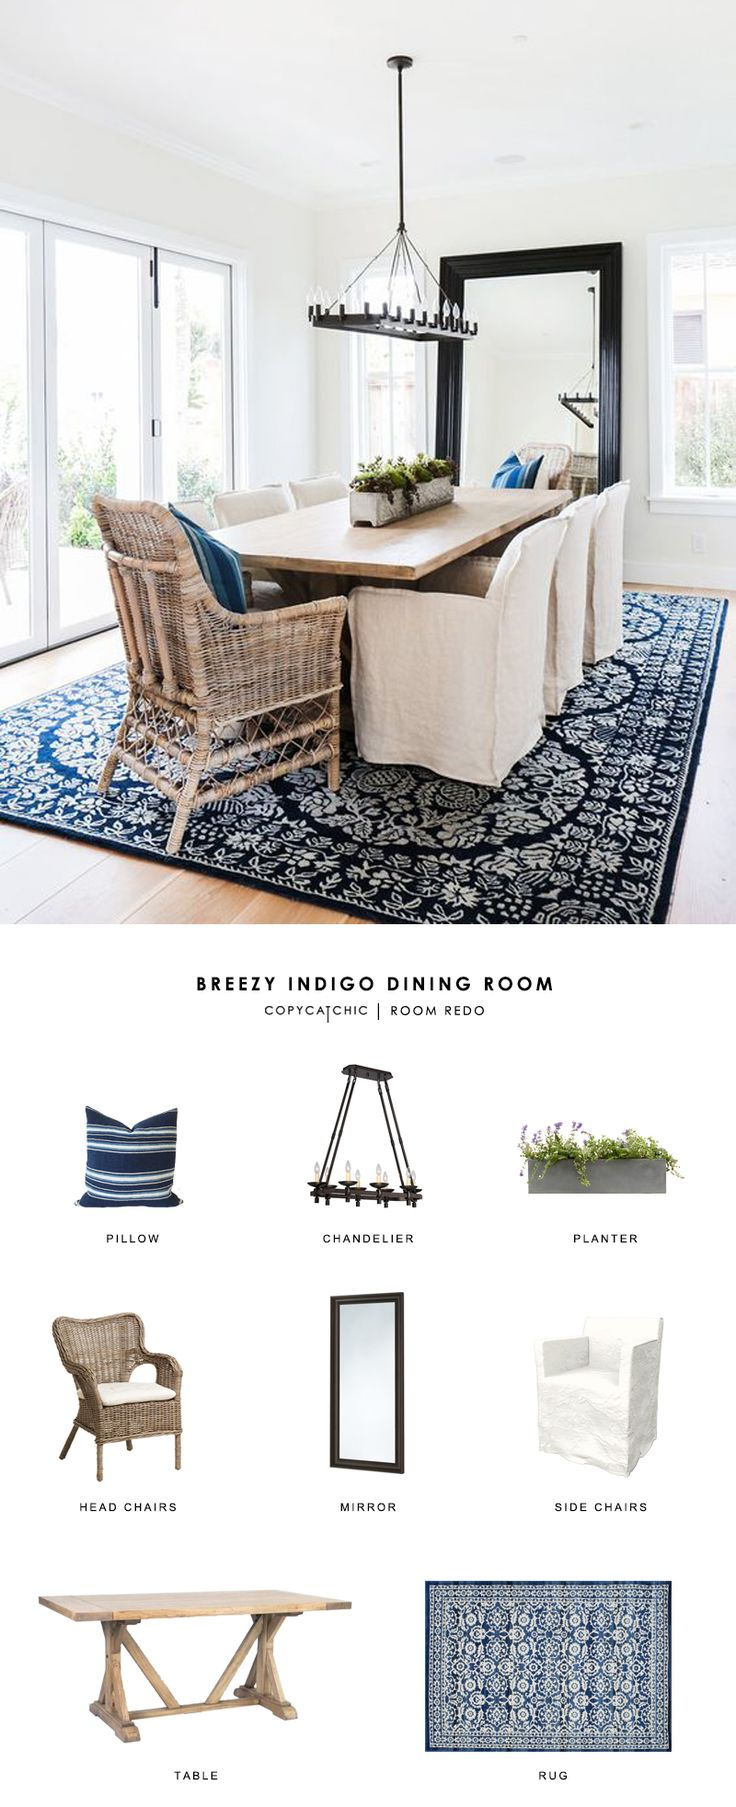 Beach lounge chair side view - Copy Cat Chic Room Redo Breezy Indigo Dining Room